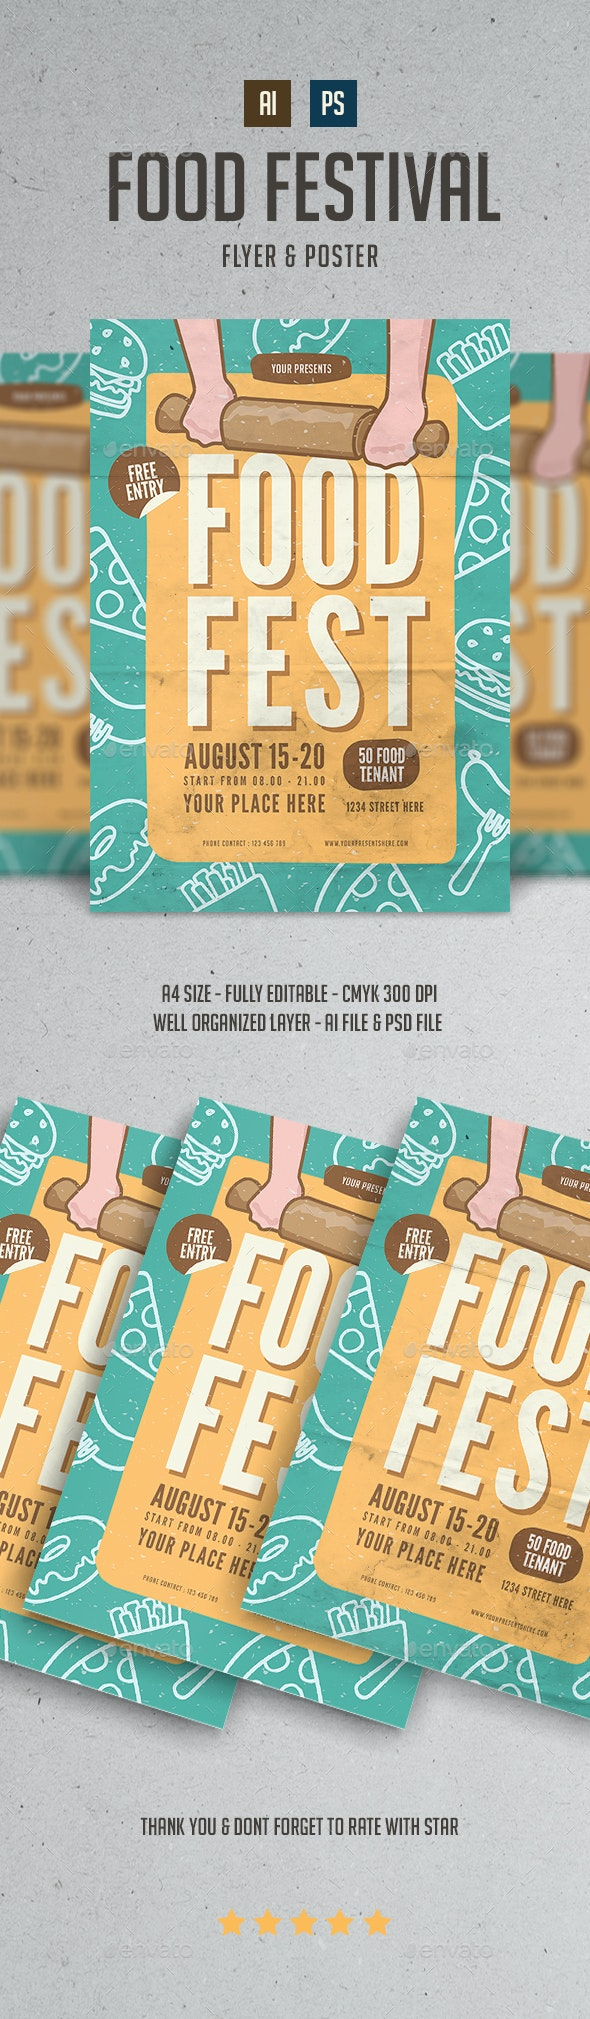 Food Fest Flyer - Events Flyers